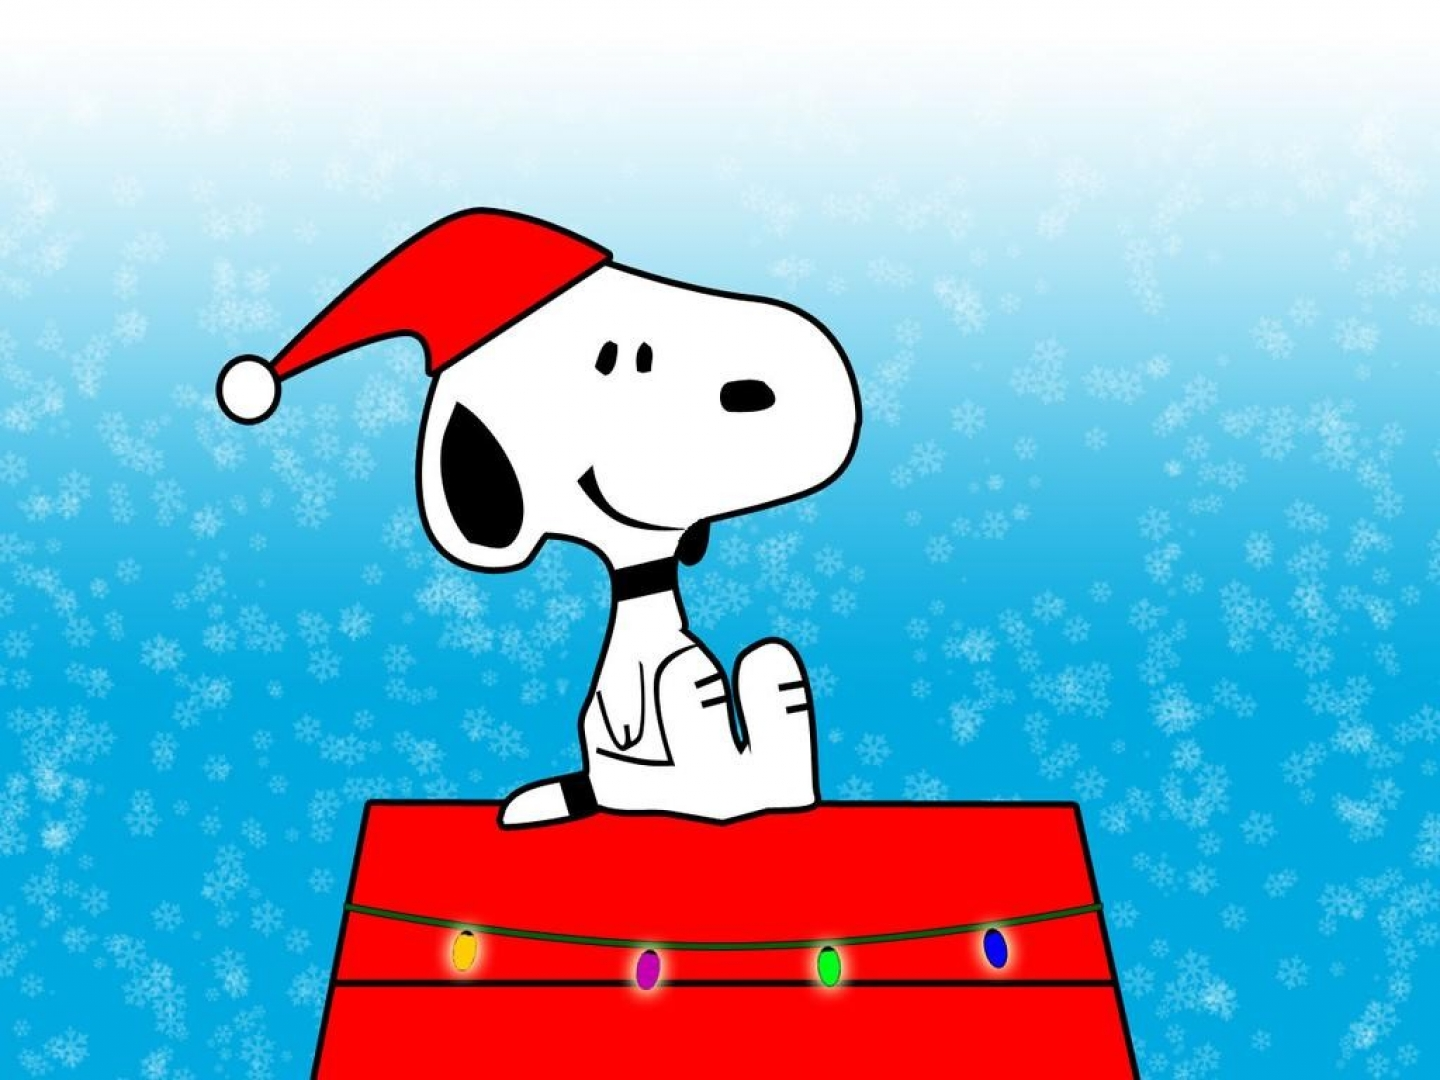 Snoopy Wallpaper Iphone 6 Snoopy Fonds D 233 Cran Arri 232 Res Plan 1440x1080 Id 468505